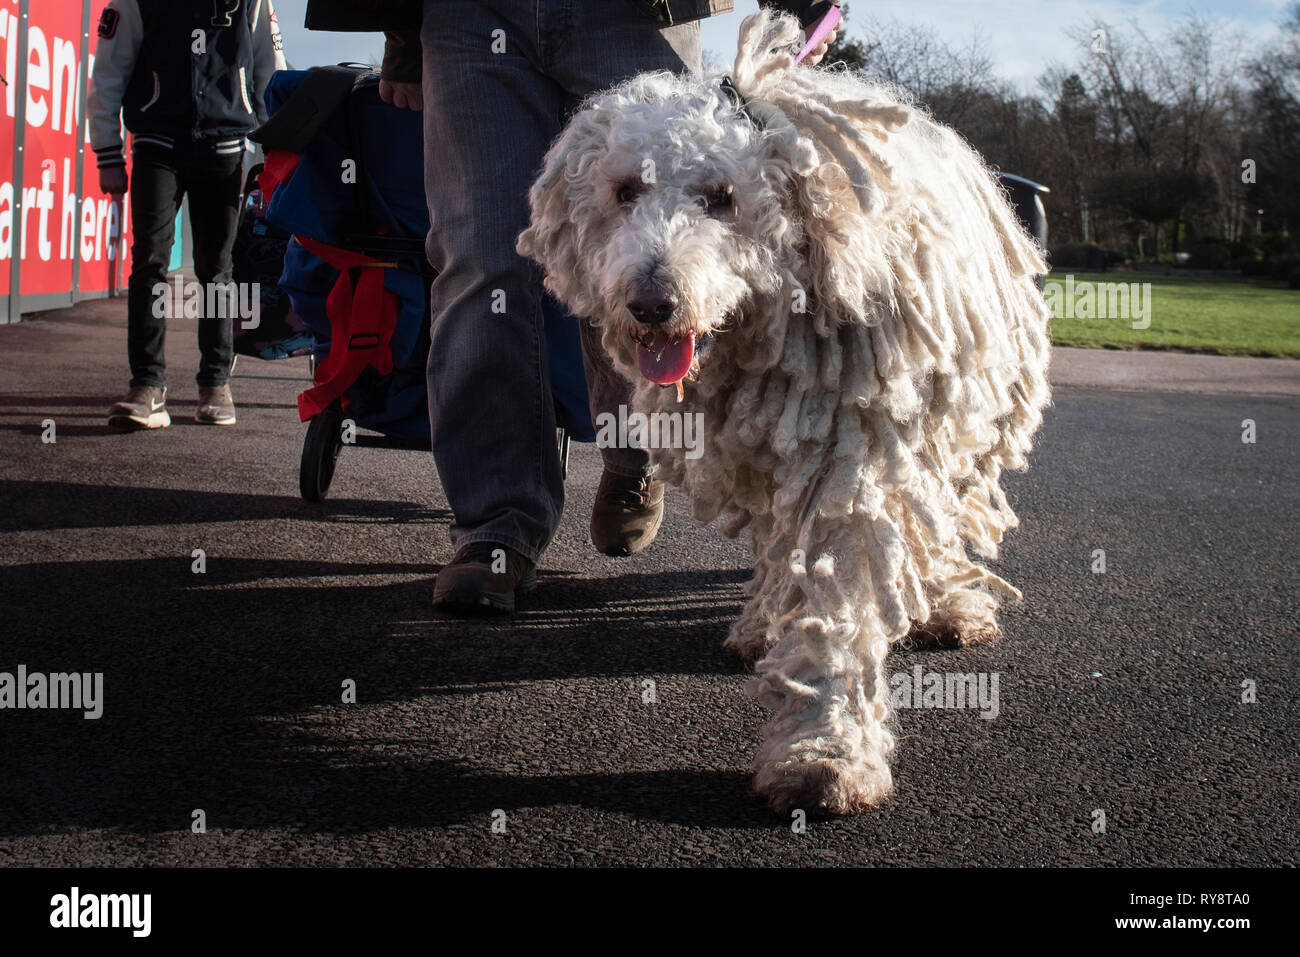 NEC, BIRMINGHAM, ENGLAND, UK. 7th MARCH 2019.  / First held in 1891, Crufts is said to be the largest show of its kind in the world, the annual four-d - Stock Image